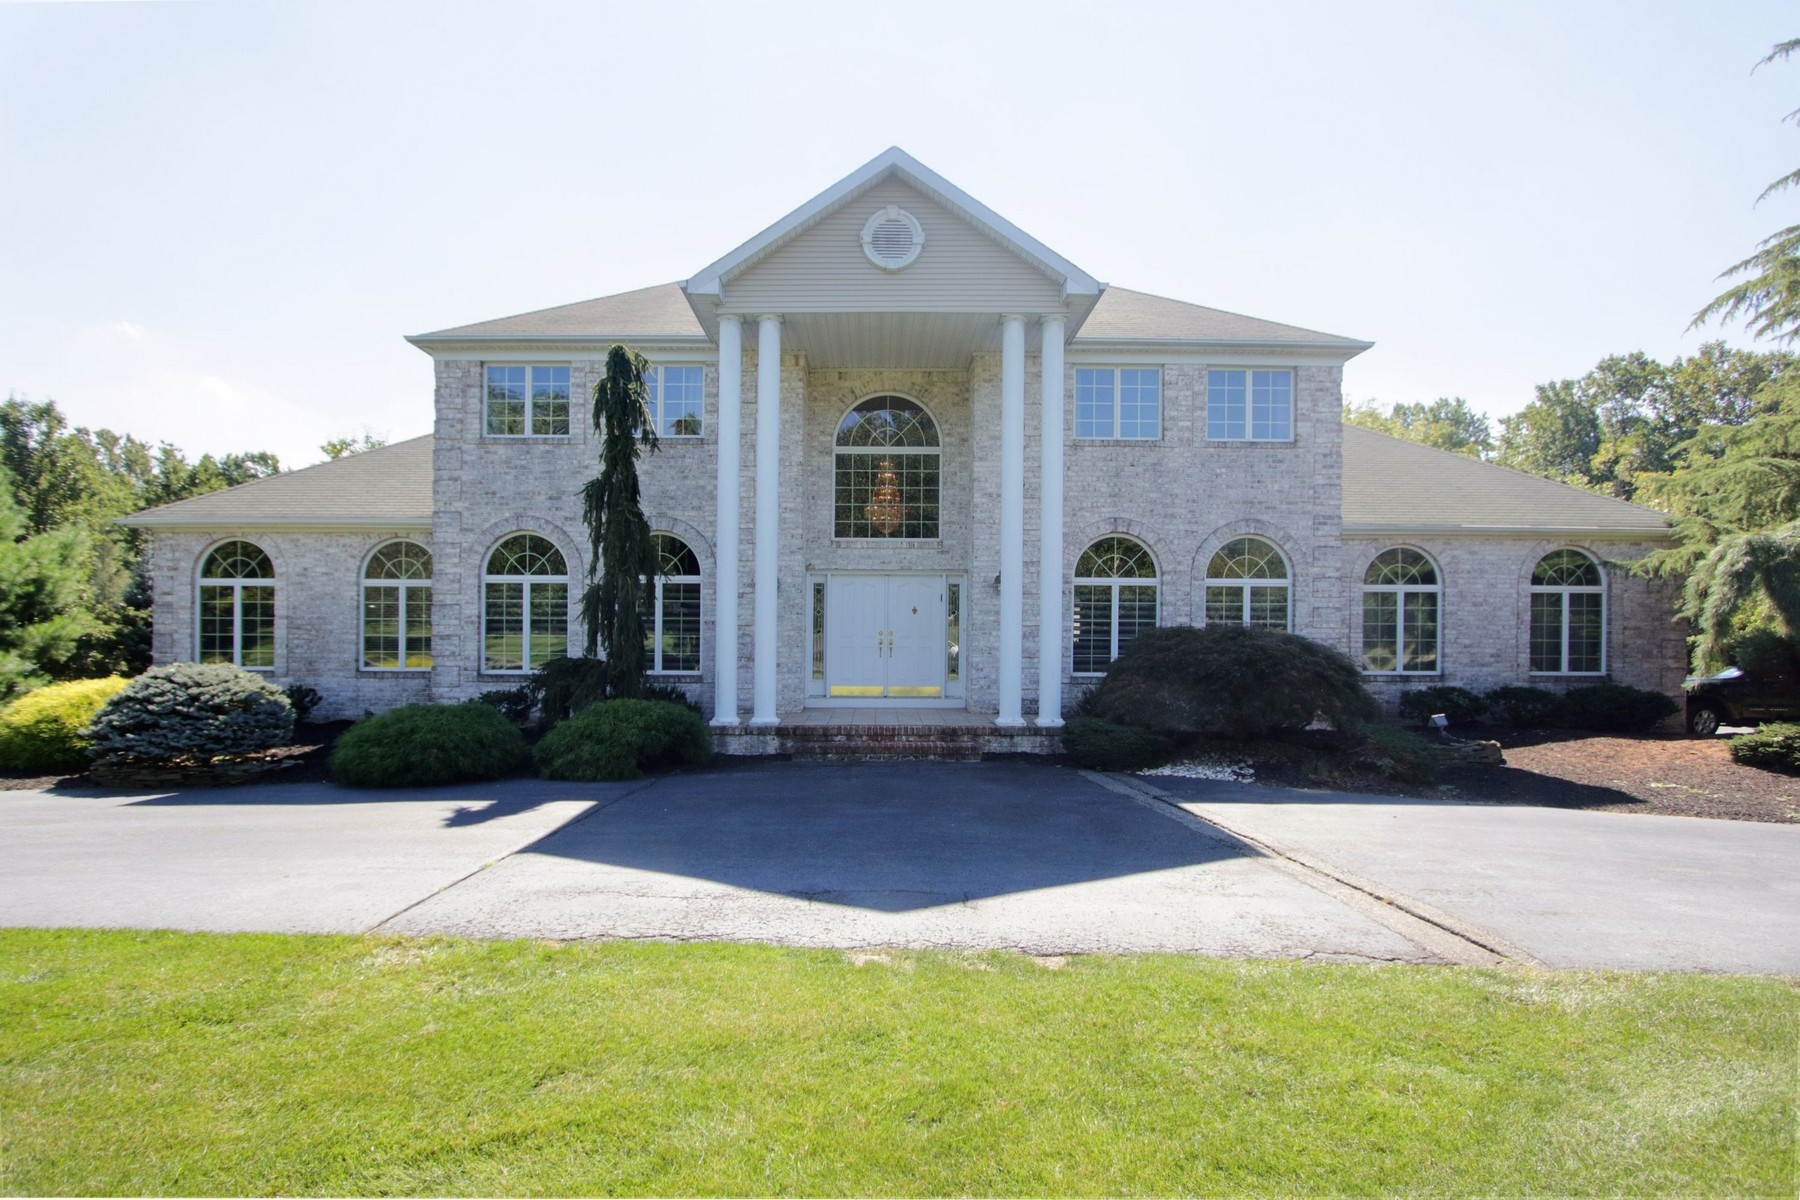 Moradia para Venda às Welcome to your own private Shangri-la! 16 Riverside Lane Holmdel, Nova Jersey 07733 Estados Unidos